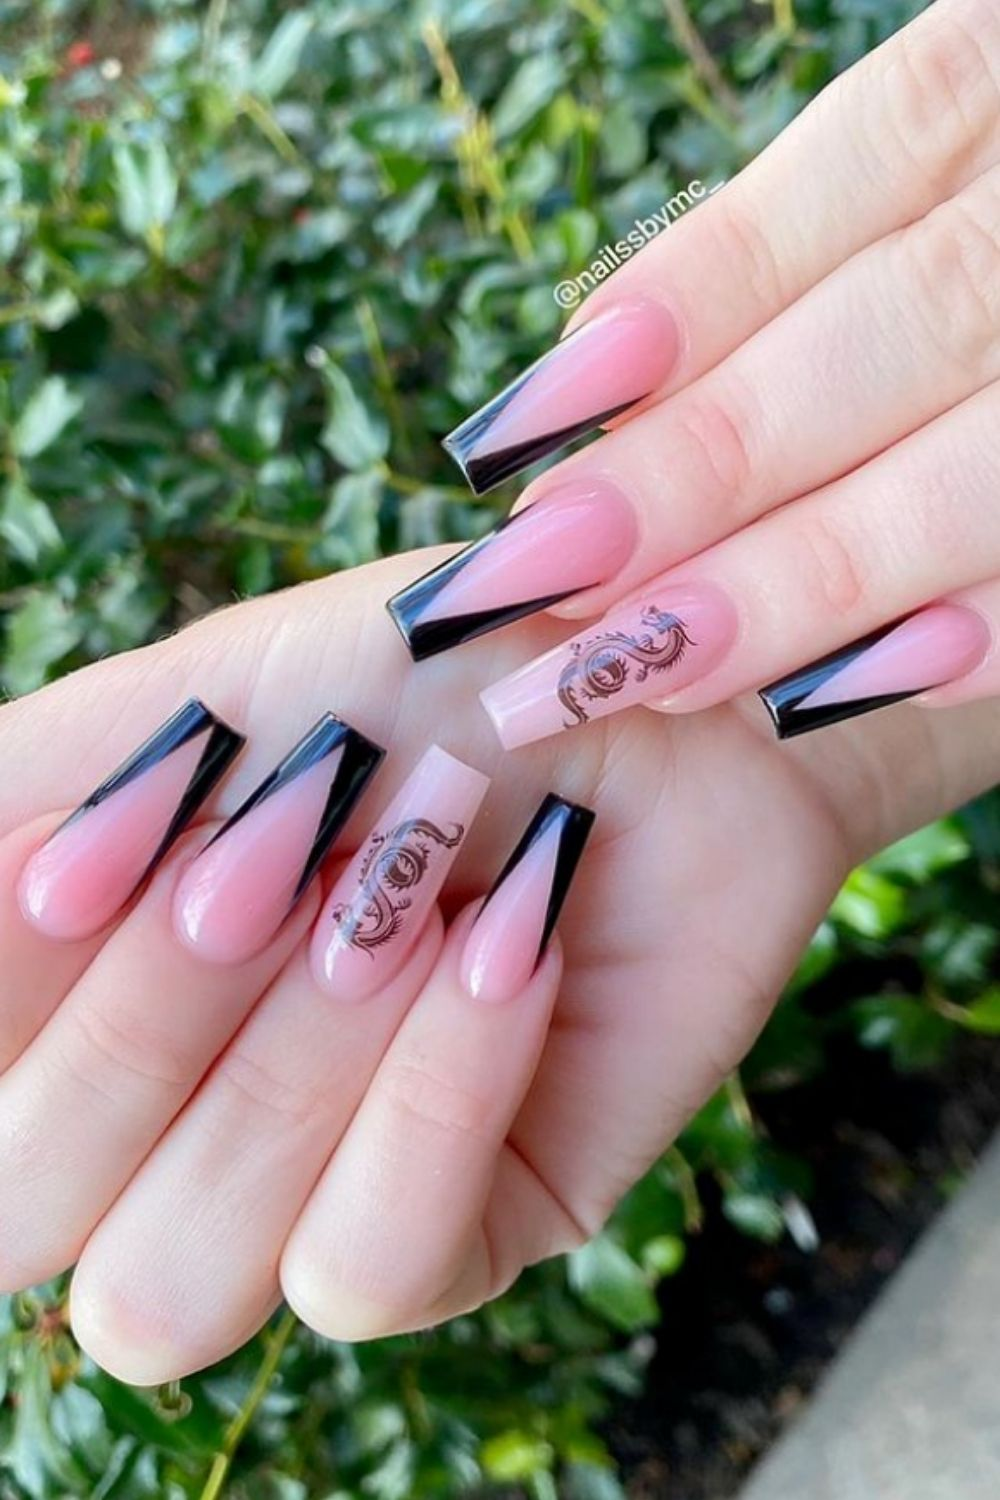 V French tip coffin nails | Elegant Coffin Nails You Need to See